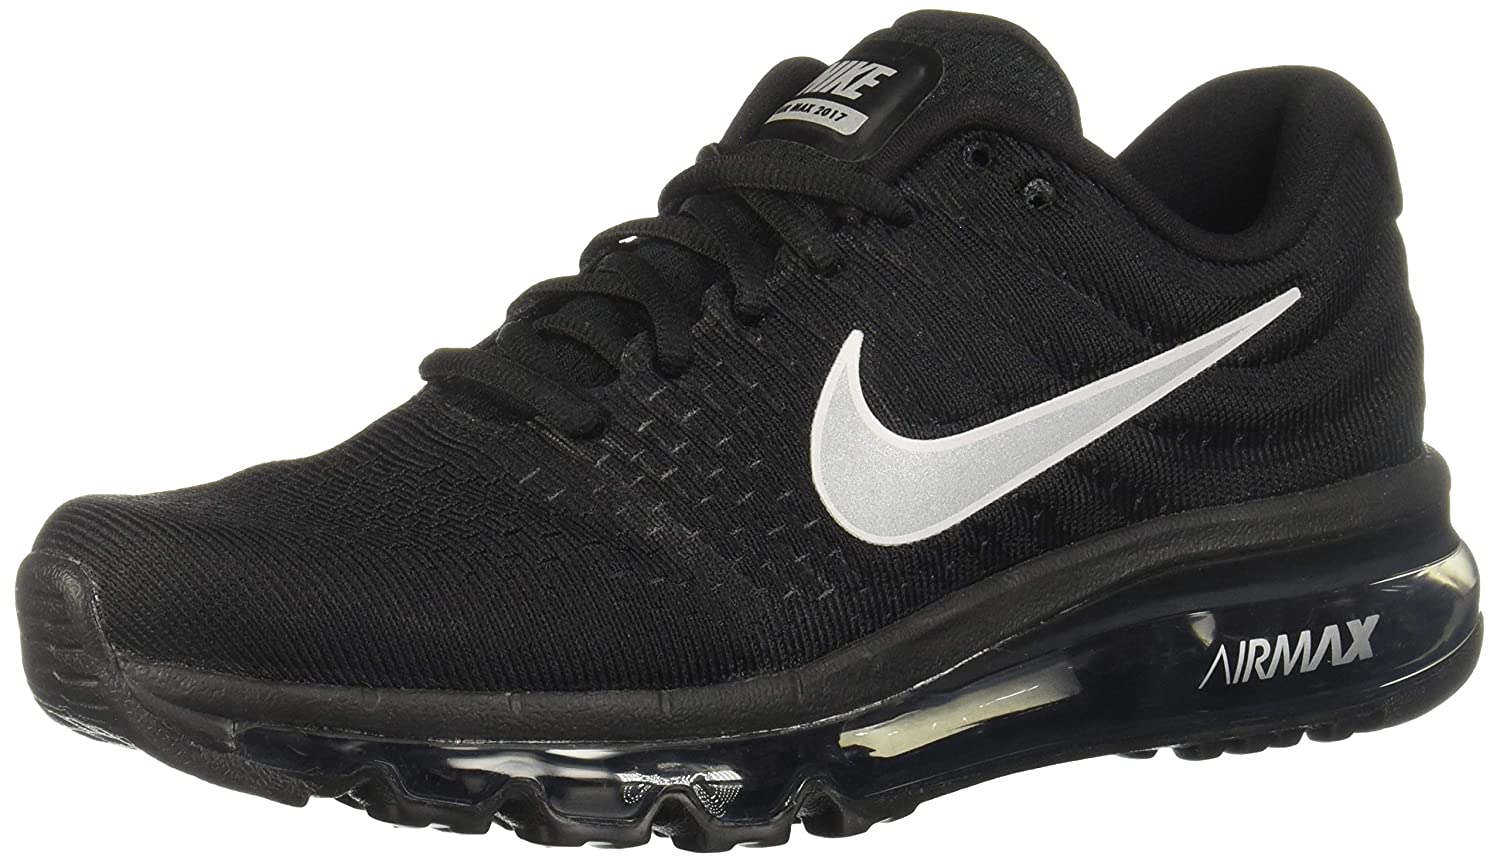 on sale 67011 f4654 Amazon.com   Nike Womens Air Max 2017 Running Shoes Black White Anthracite  849560-001 Size 10   Road Running